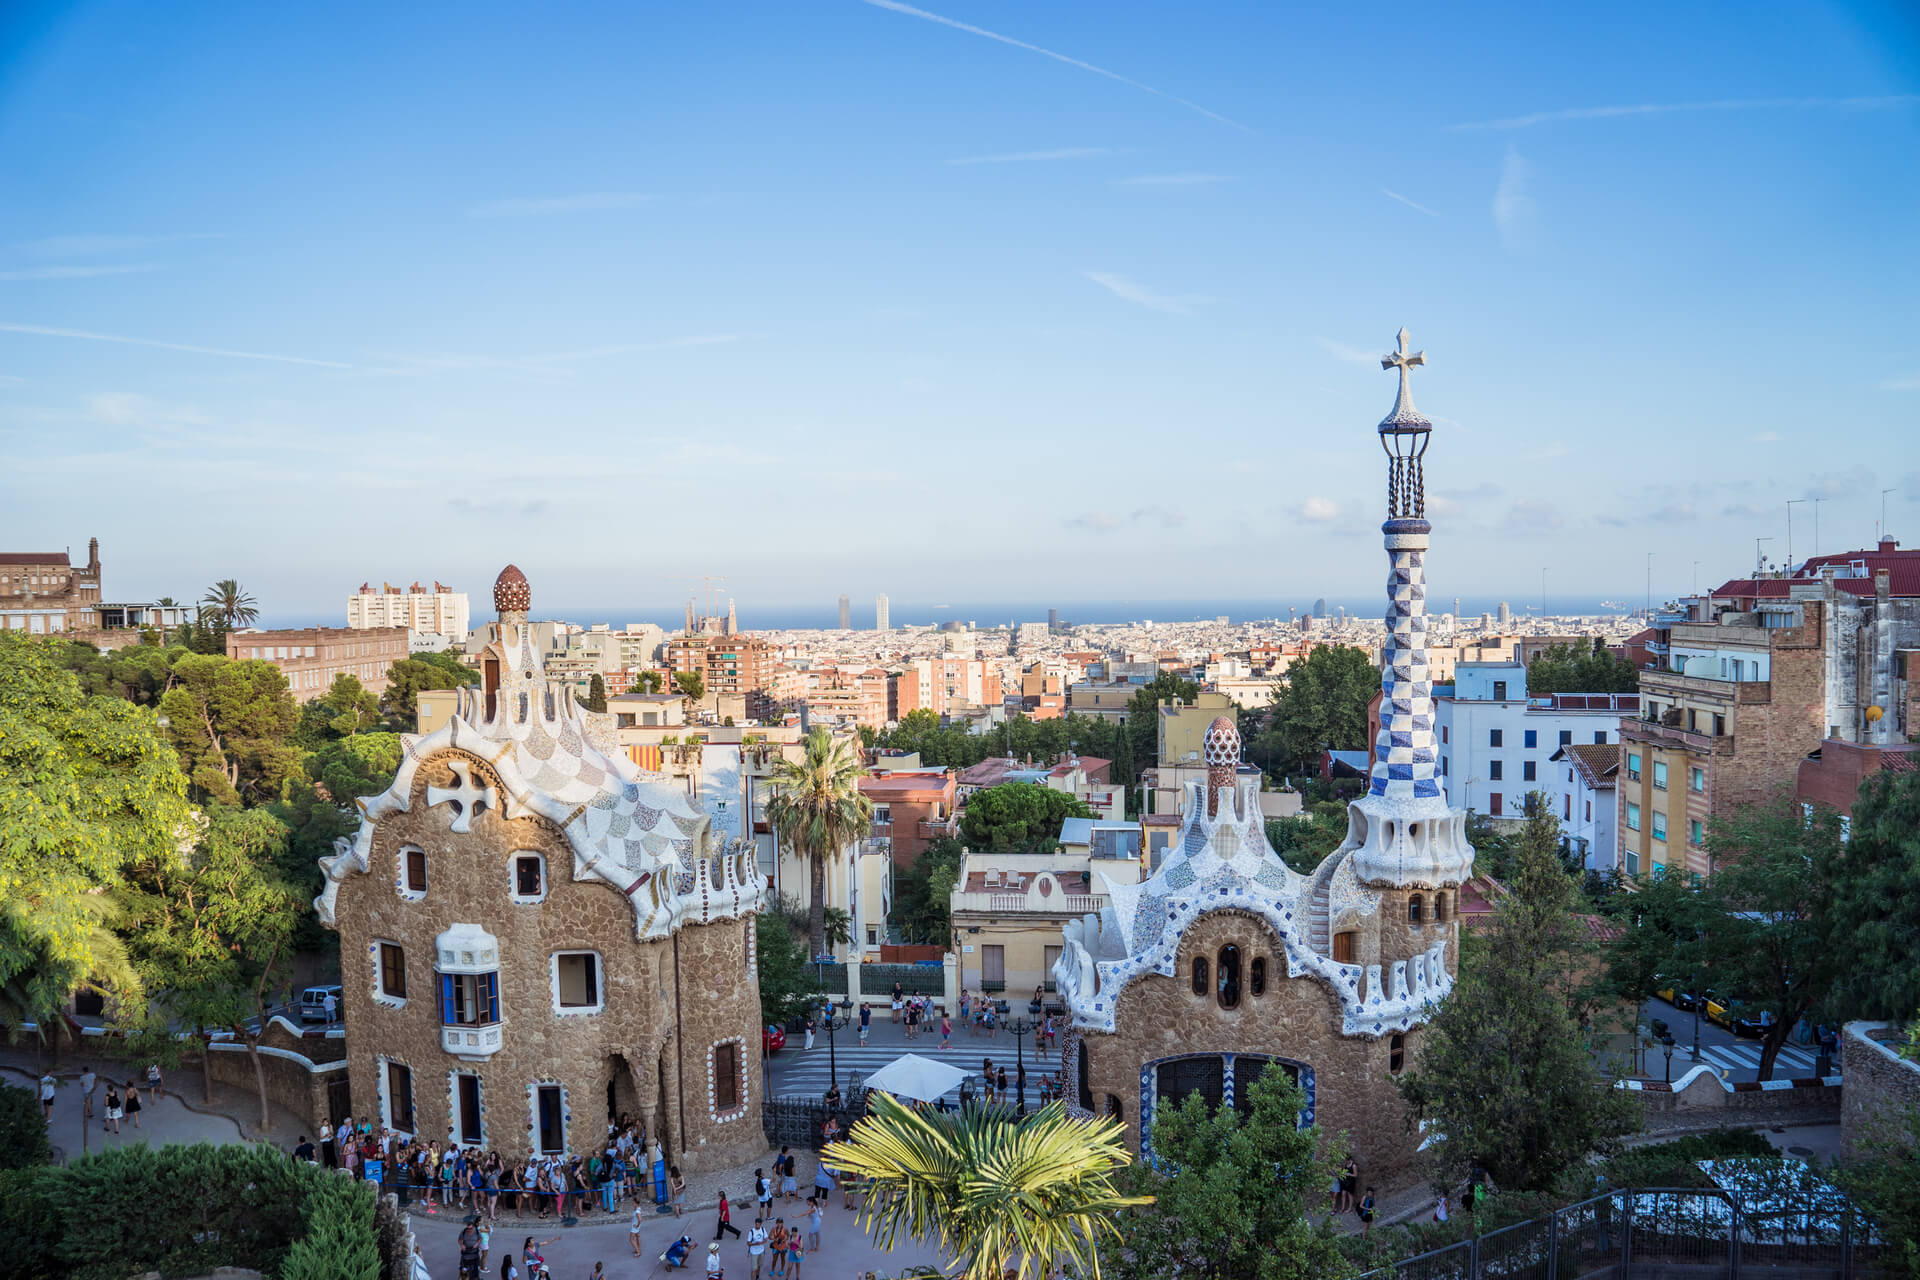 View of Güell Park in Barcelona, Spain